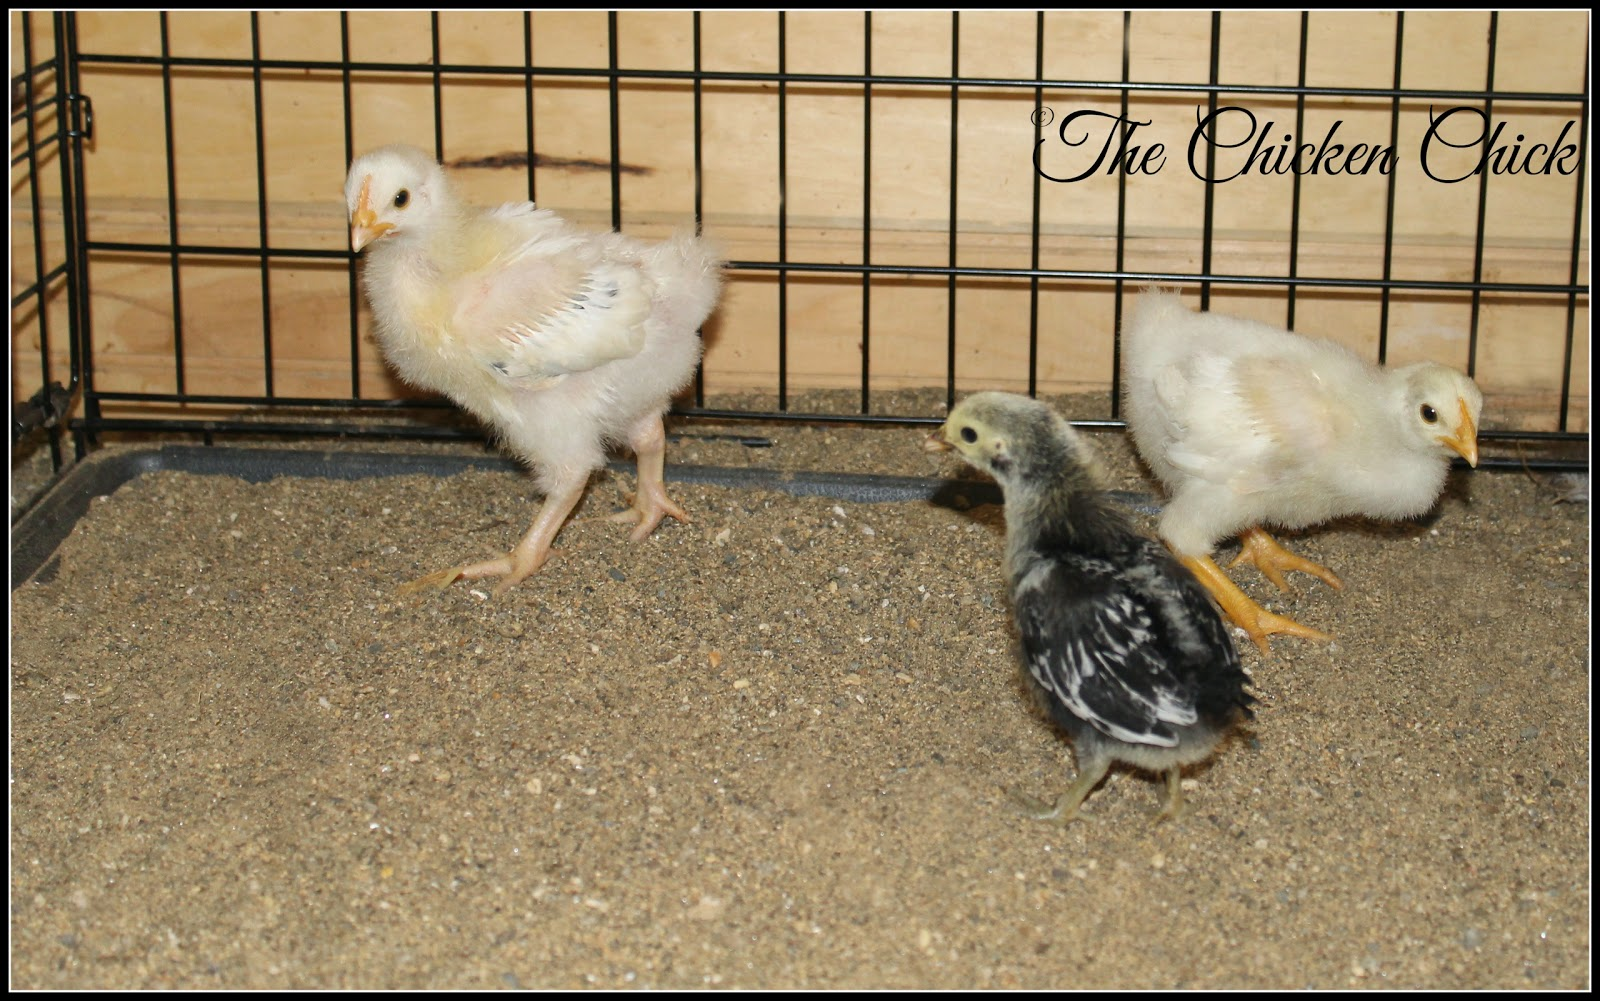 P. Allen Smith's grandchicks with a Silver Spangled Hamburg chick